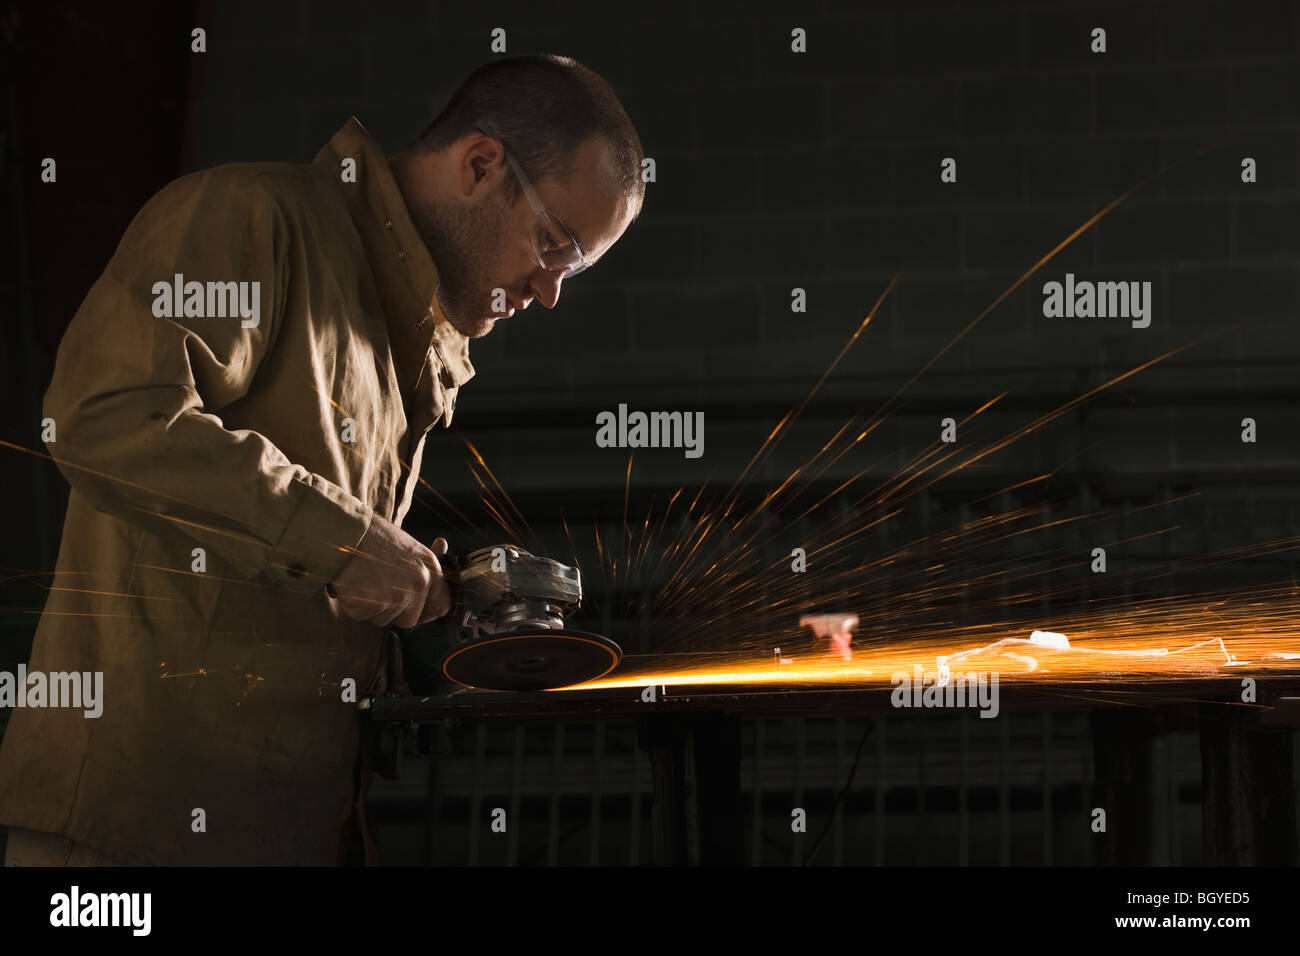 Steel grinder working in metal shop - Stock Image